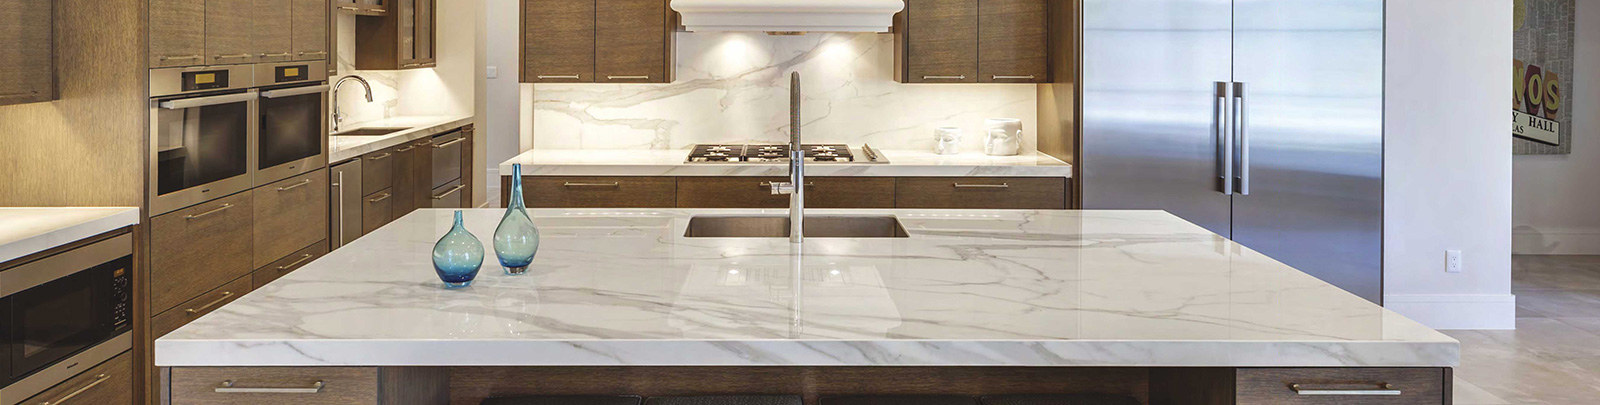 MARVA | Cambria, Neolith, Stone Countertop Distributors In Richmond VA    MARVA Marble And Granite